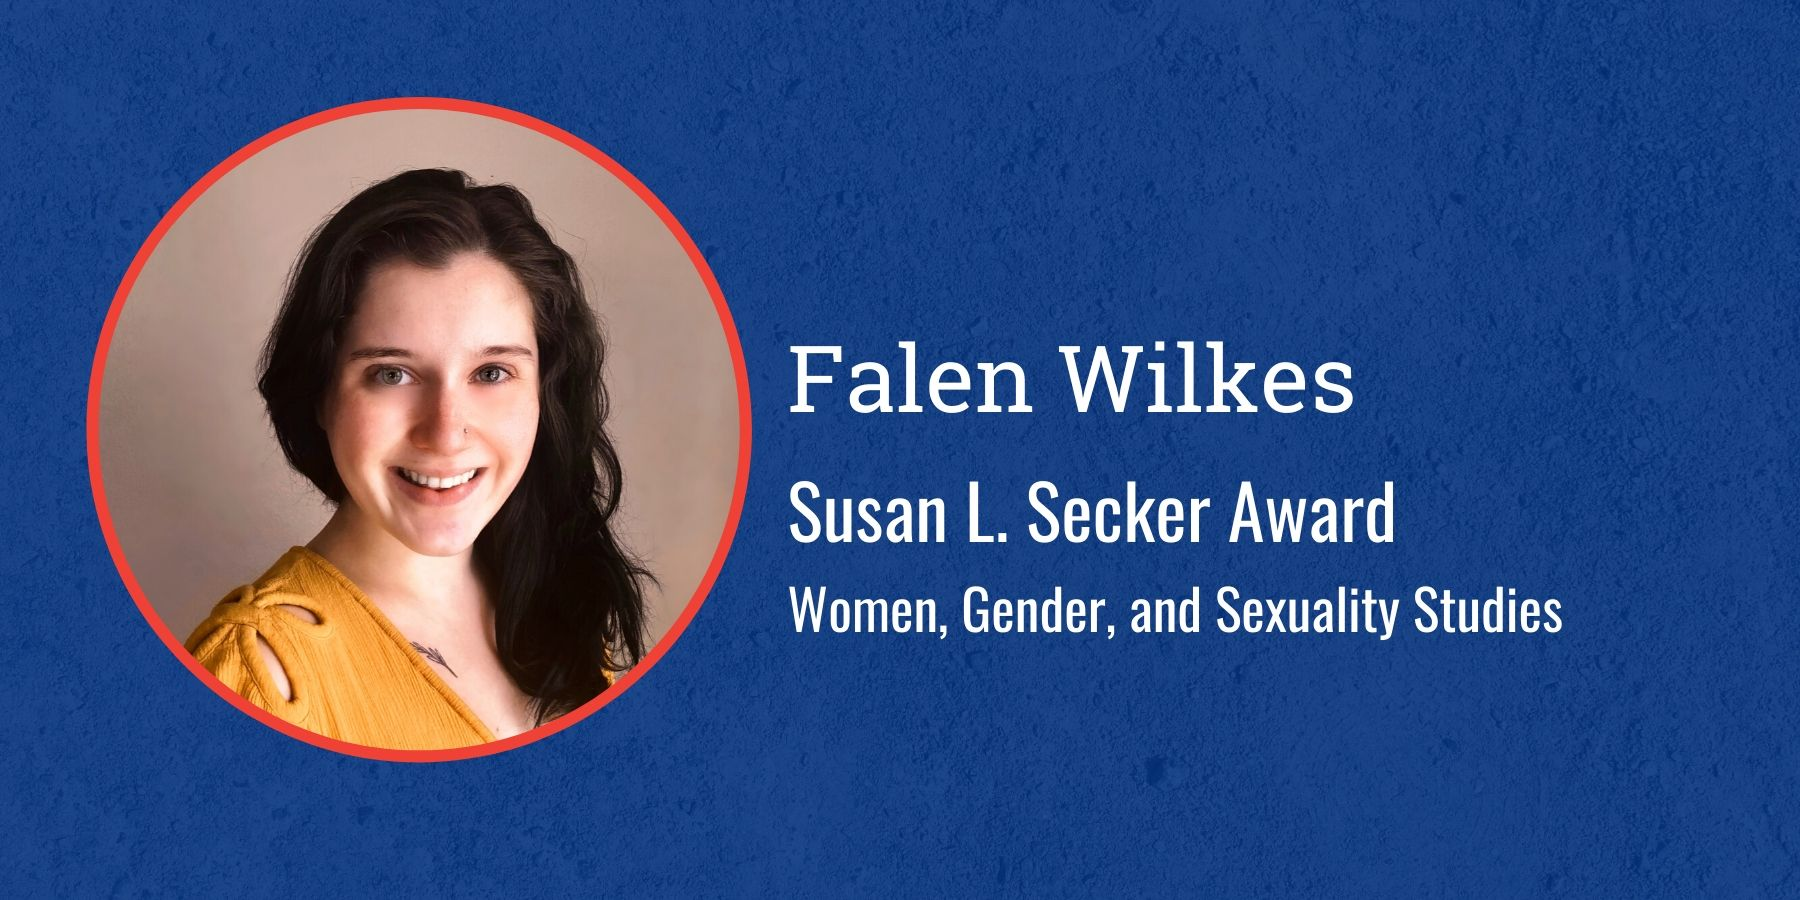 Photo of Falen Wilkes and text Susan L. Secker Award, Women, Gender, and Sexuality Studies